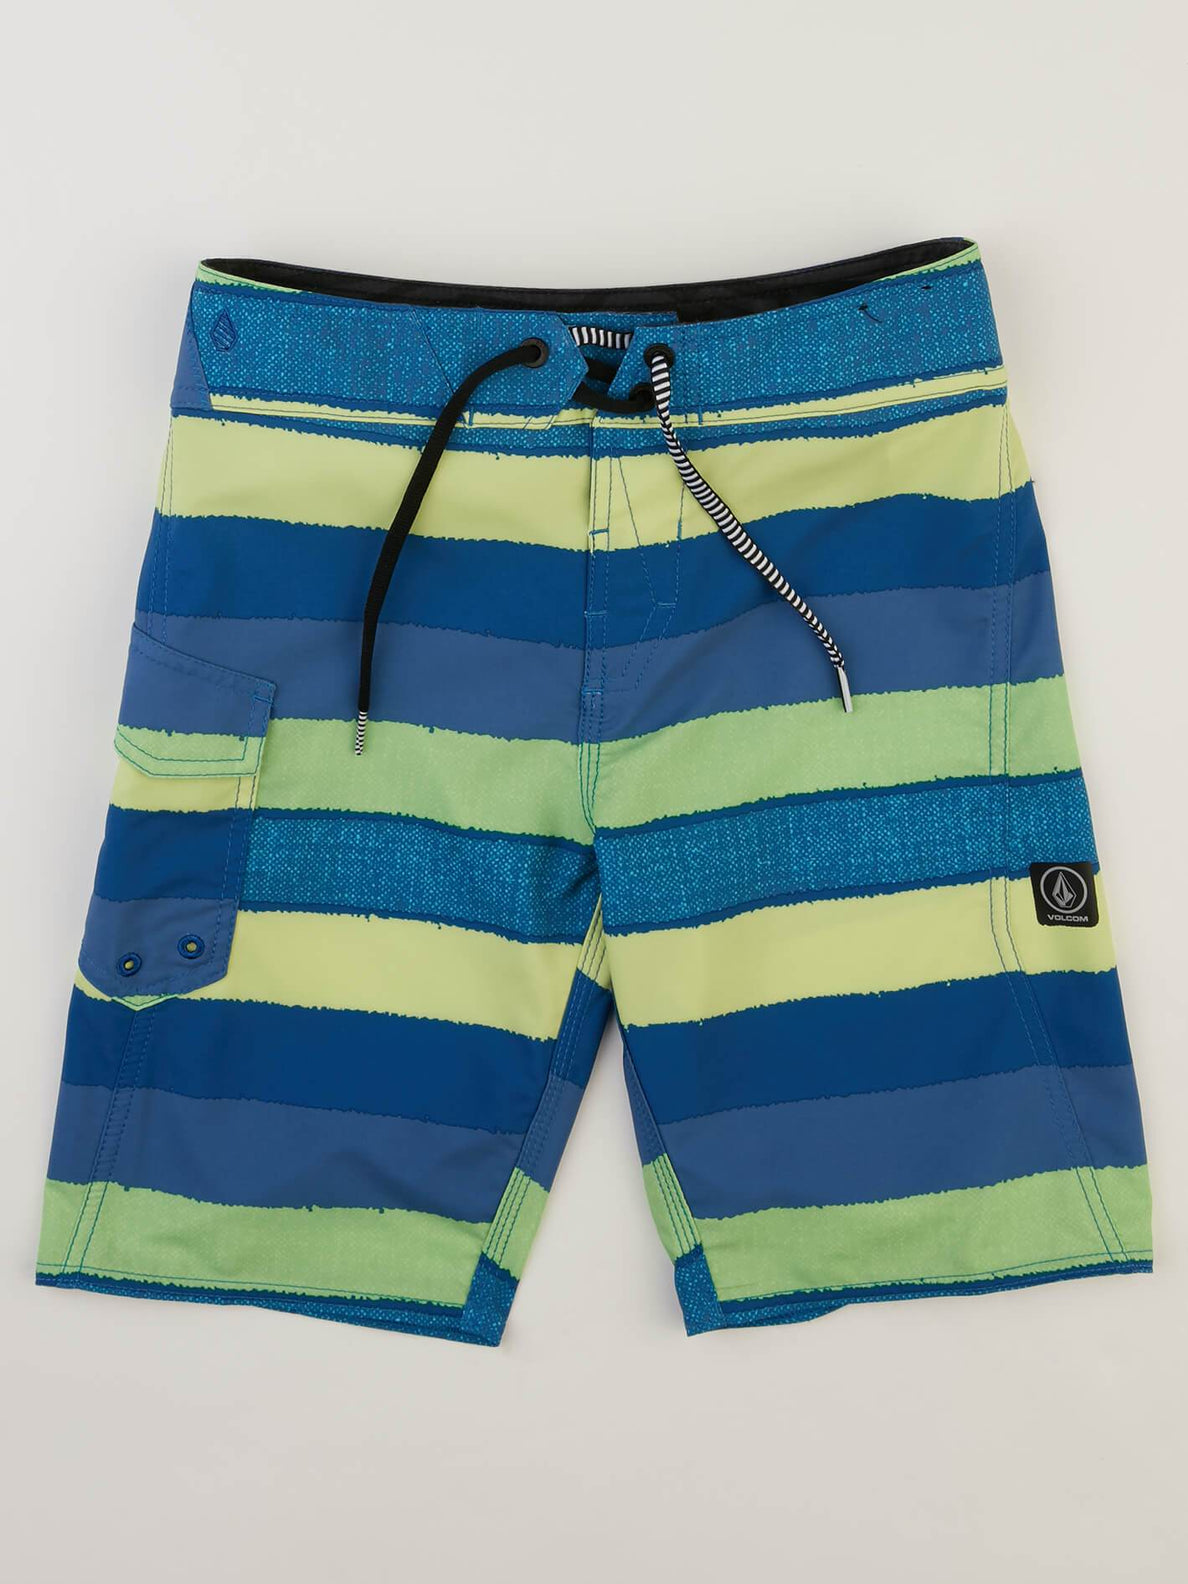 Big Boys Magnetic Liney Mod Boardshorts In Shadow Lime, Front View